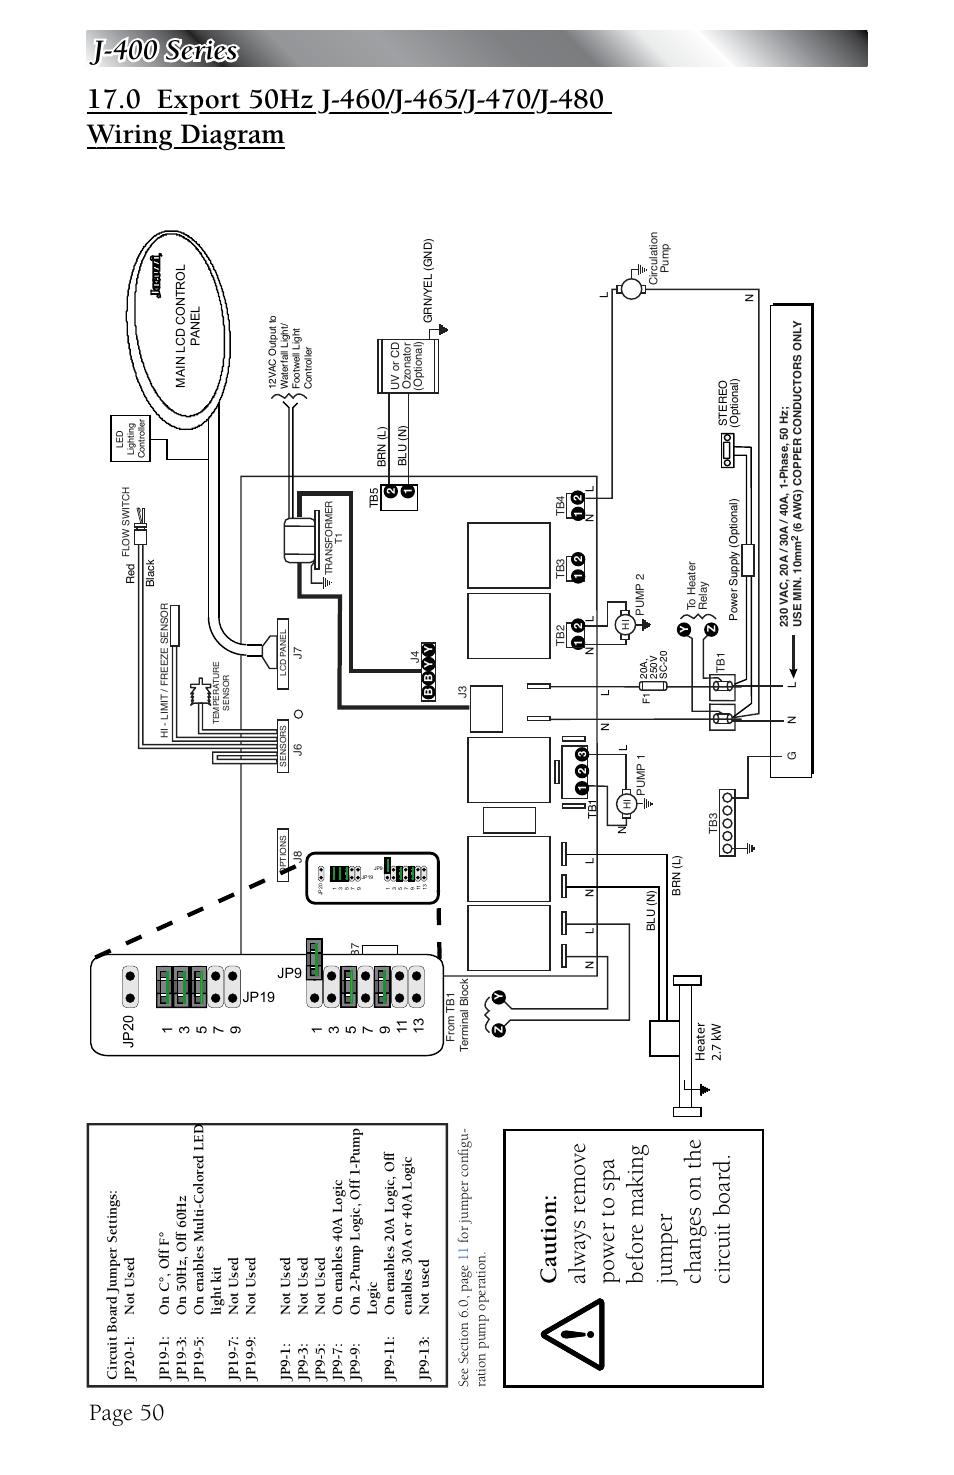 460 220 Volt Wiring Diagram Trusted Diagrams Switch Jacuzzi J 465 Circuit And Hub U2022